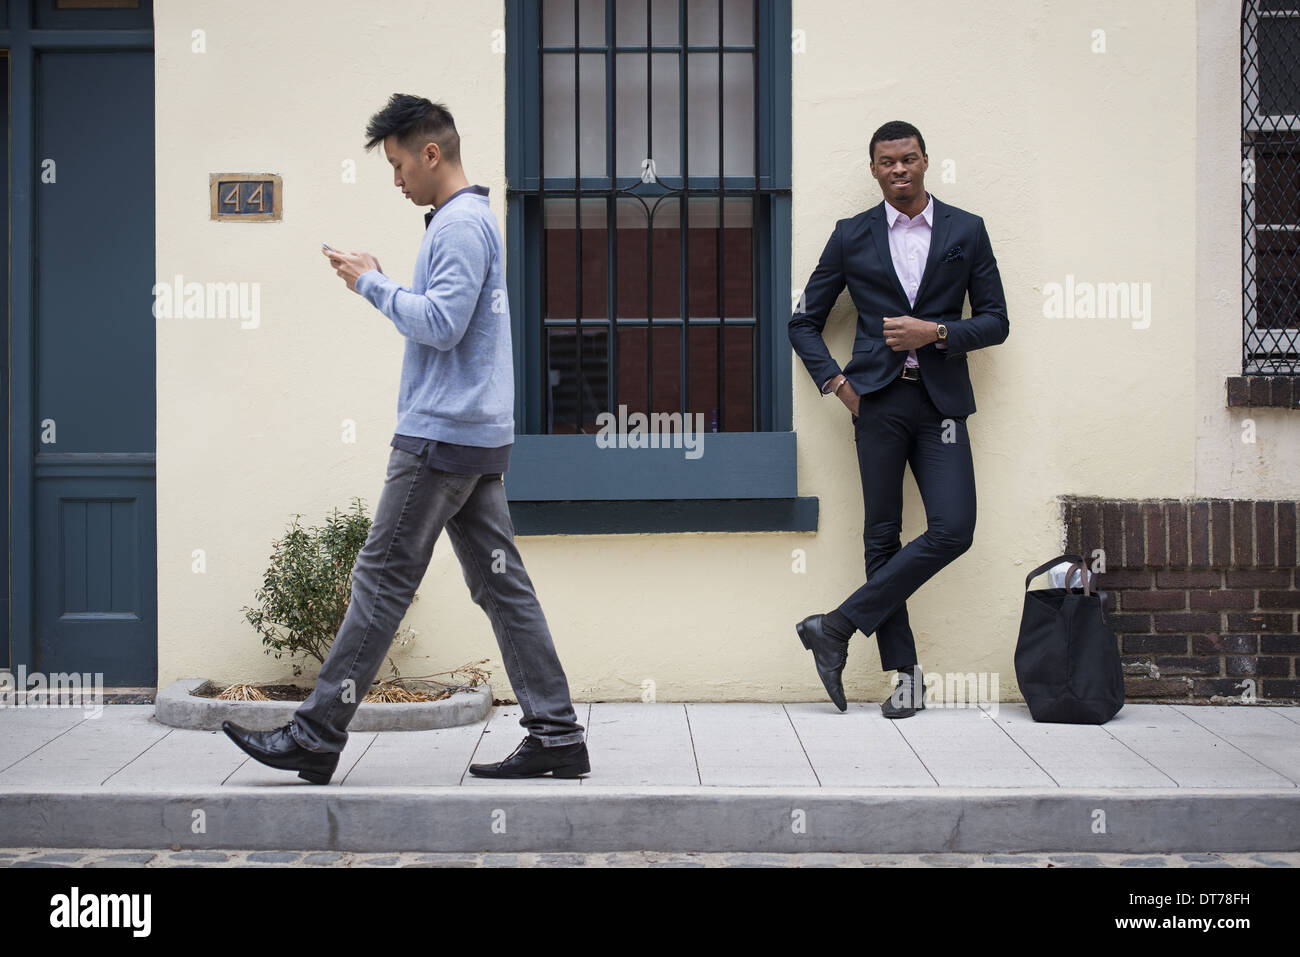 Young people outdoors on the city streets in springtime.  A man leaning against a wall and one walking past checking his phone. - Stock Image